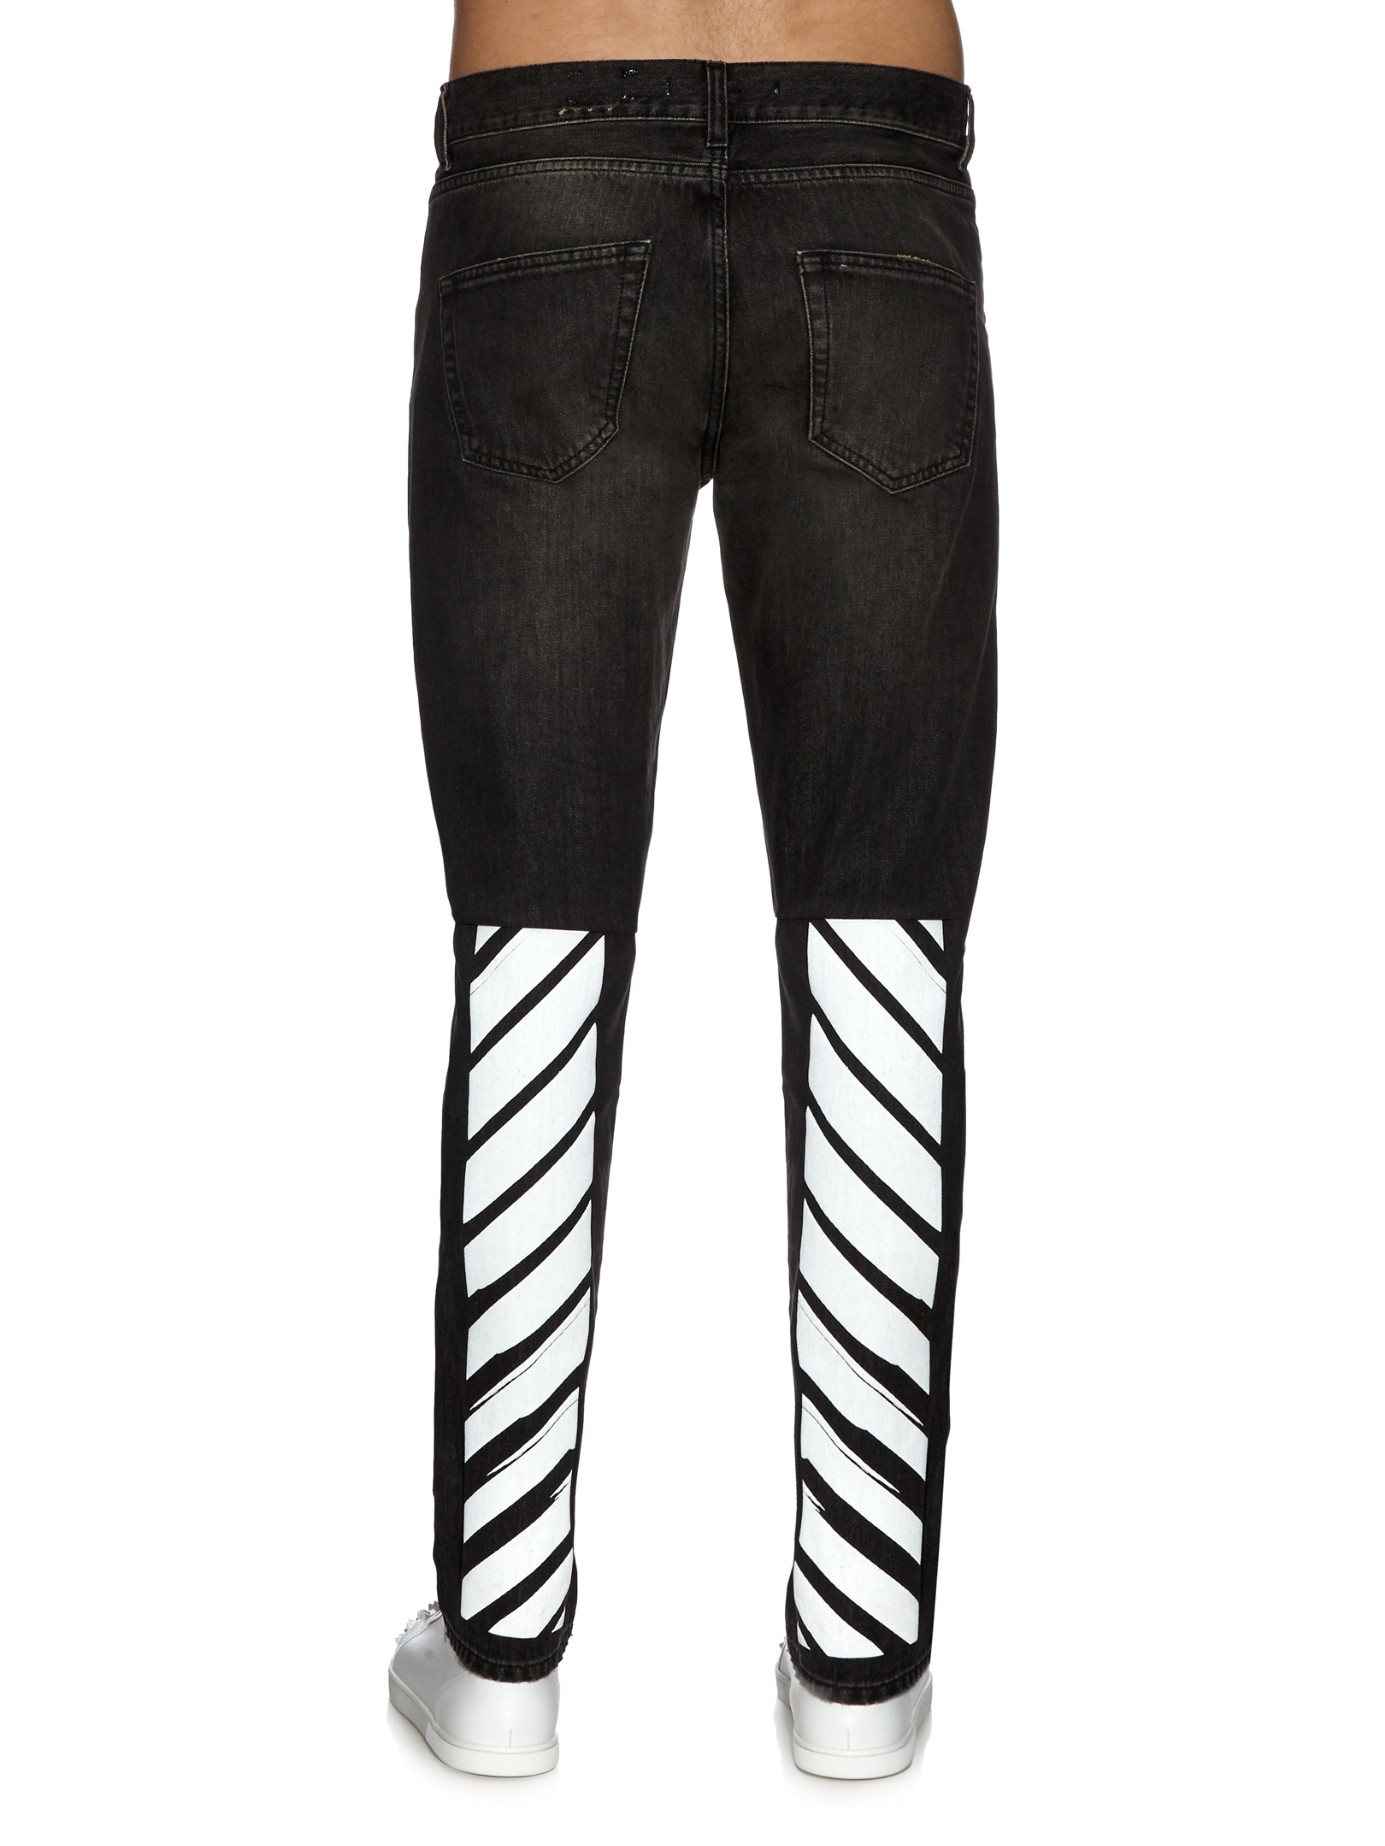 Off-white c/o virgil abloh Distressed Skinny Jeans for Men | Lyst